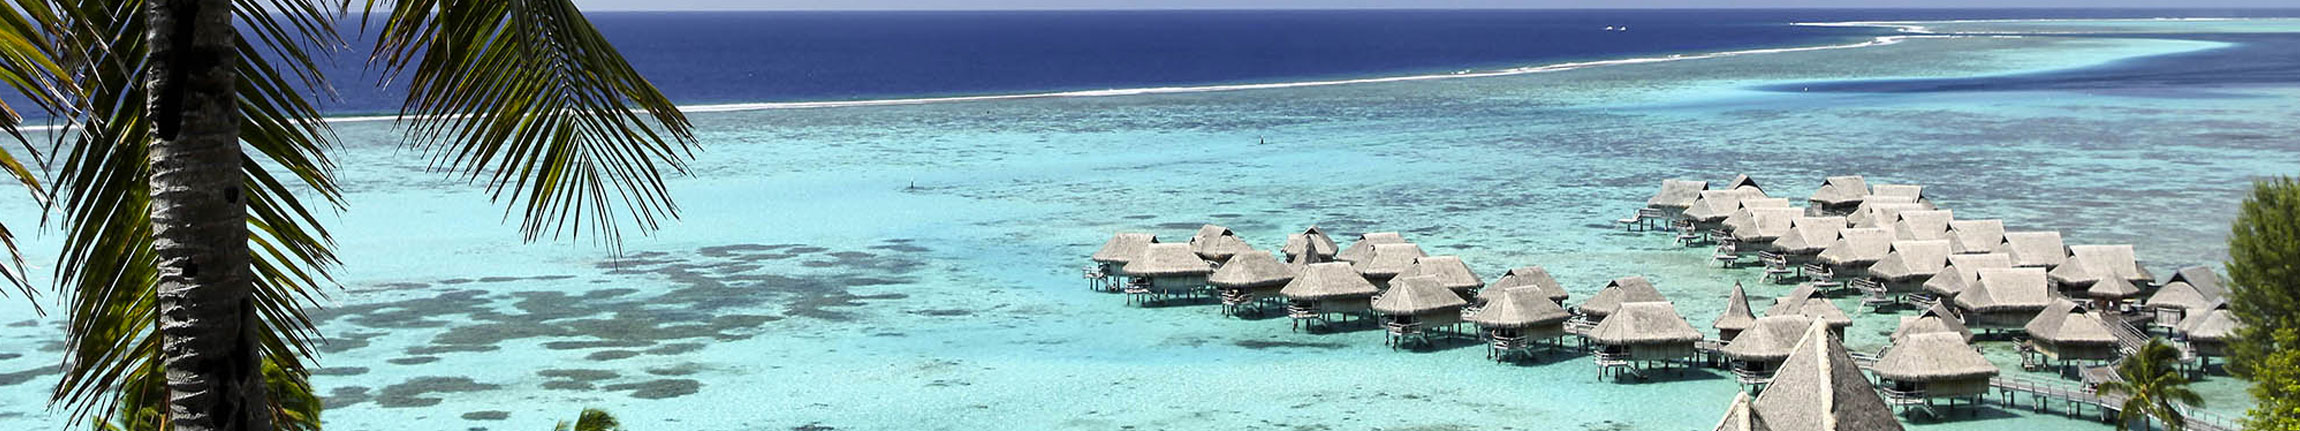 Sofitel Moorea Ia Ora Beach Resort Book With E Tahiti Travel